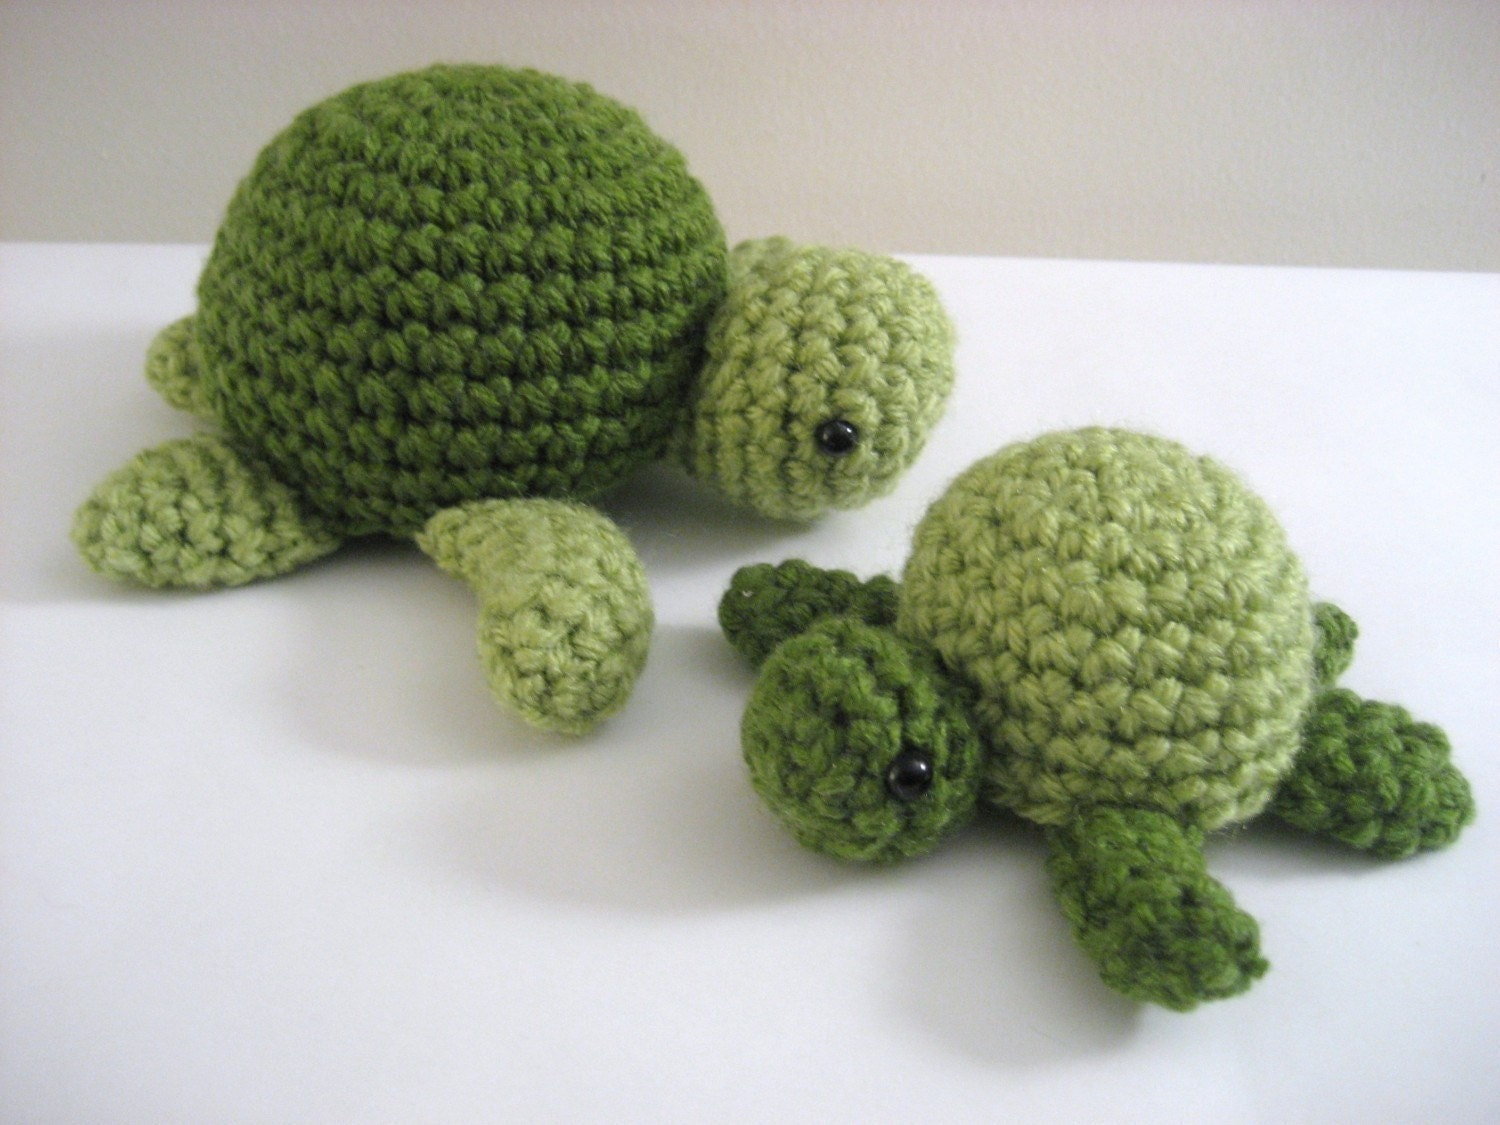 Tunisian Crochet Patterns Baby Free : Amigurumi Crochet Sea Turtle Pattern Digital Download